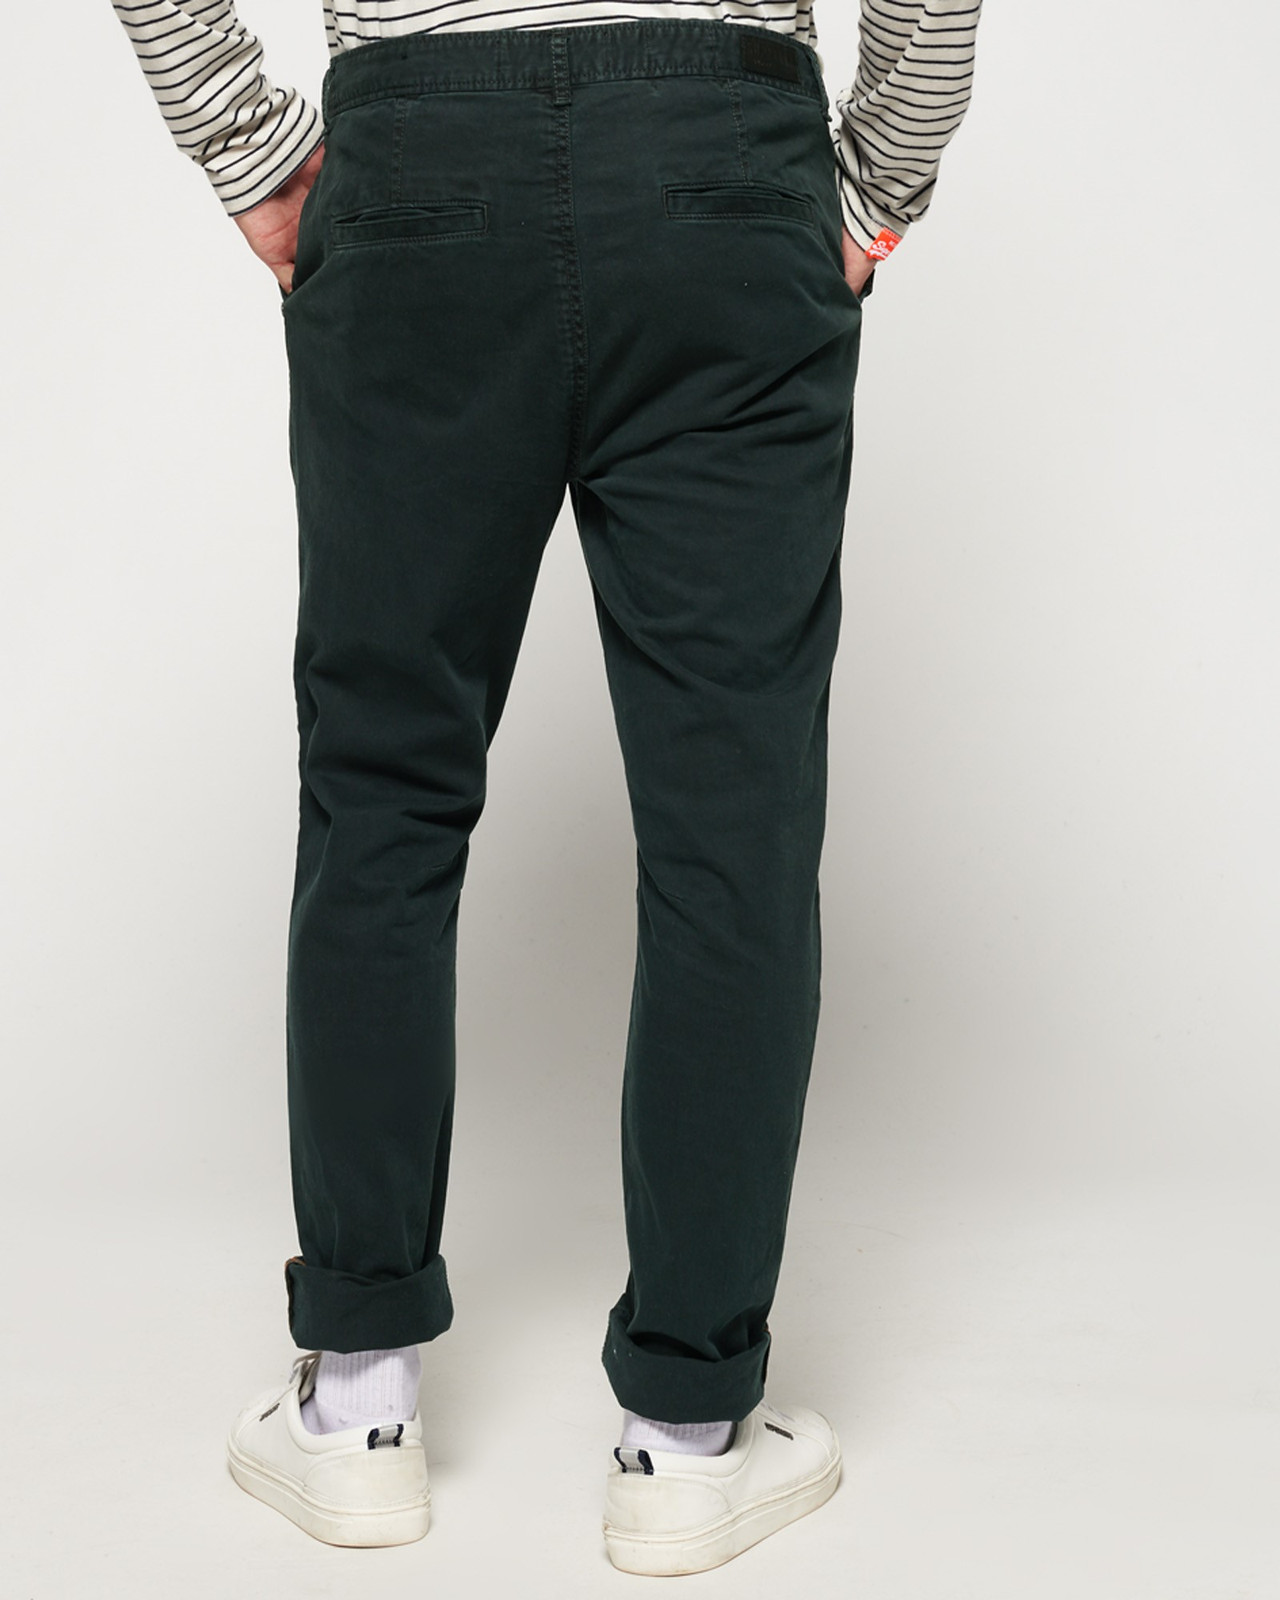 Superdry Mens Surplus Goods Chino Trousers Black Chino Pants 2